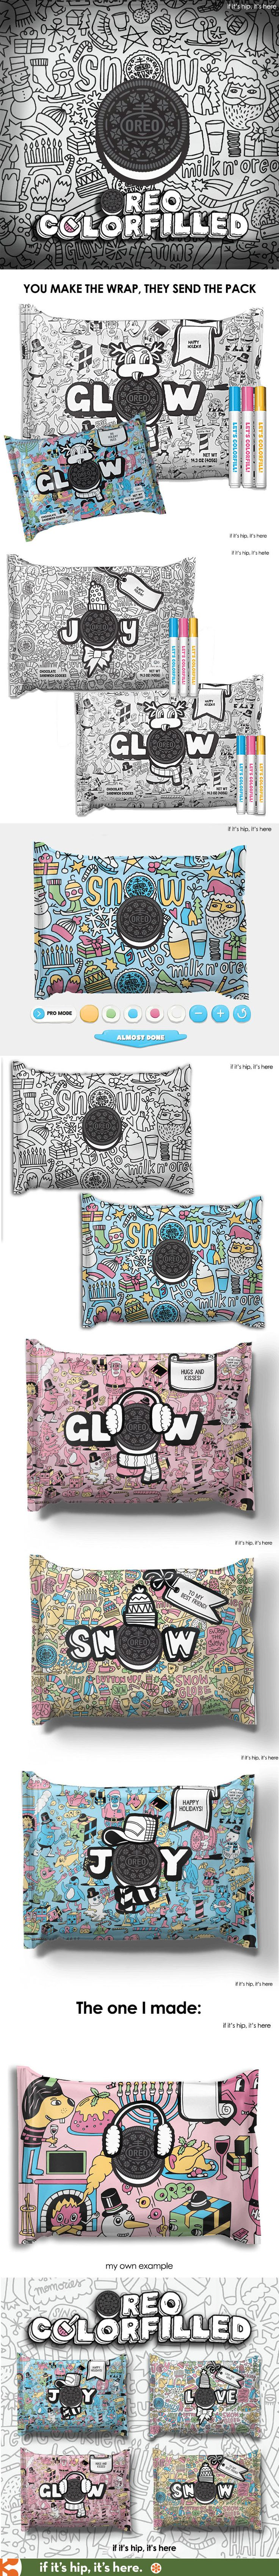 OREO's new customizable and color-in packaging is awesome!  #oreocolorfilled